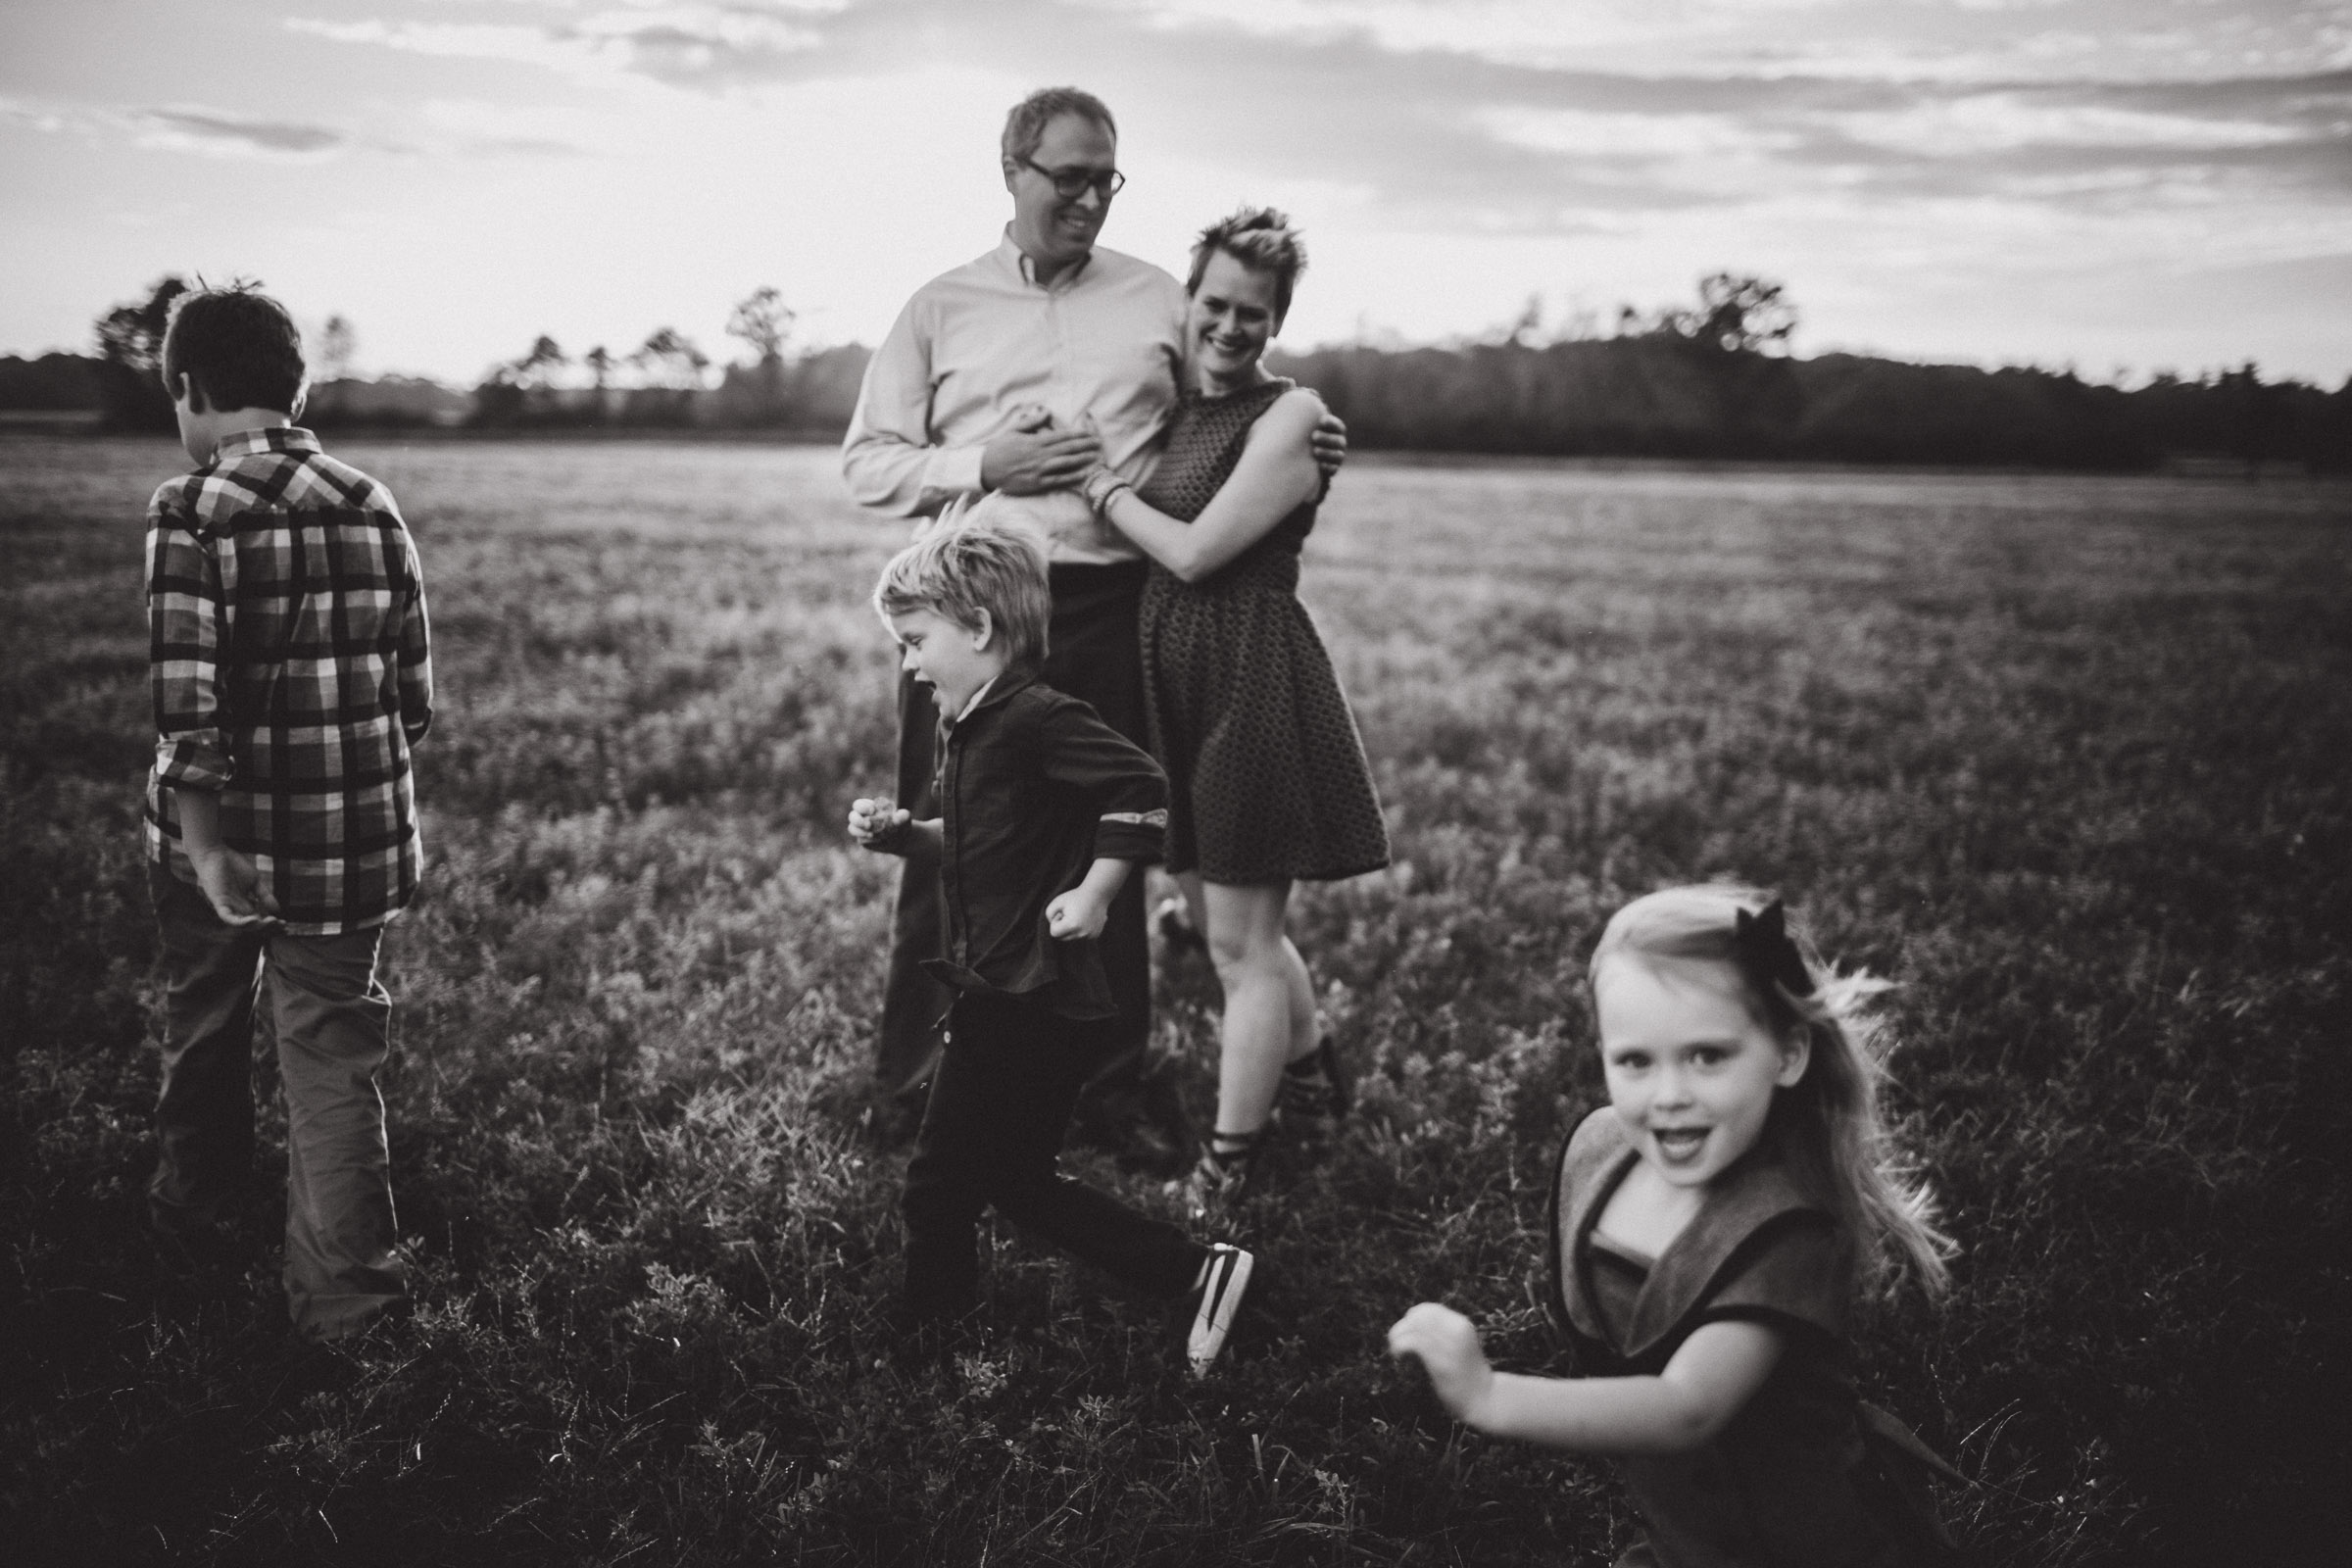 children running around parents in open field, black and white image